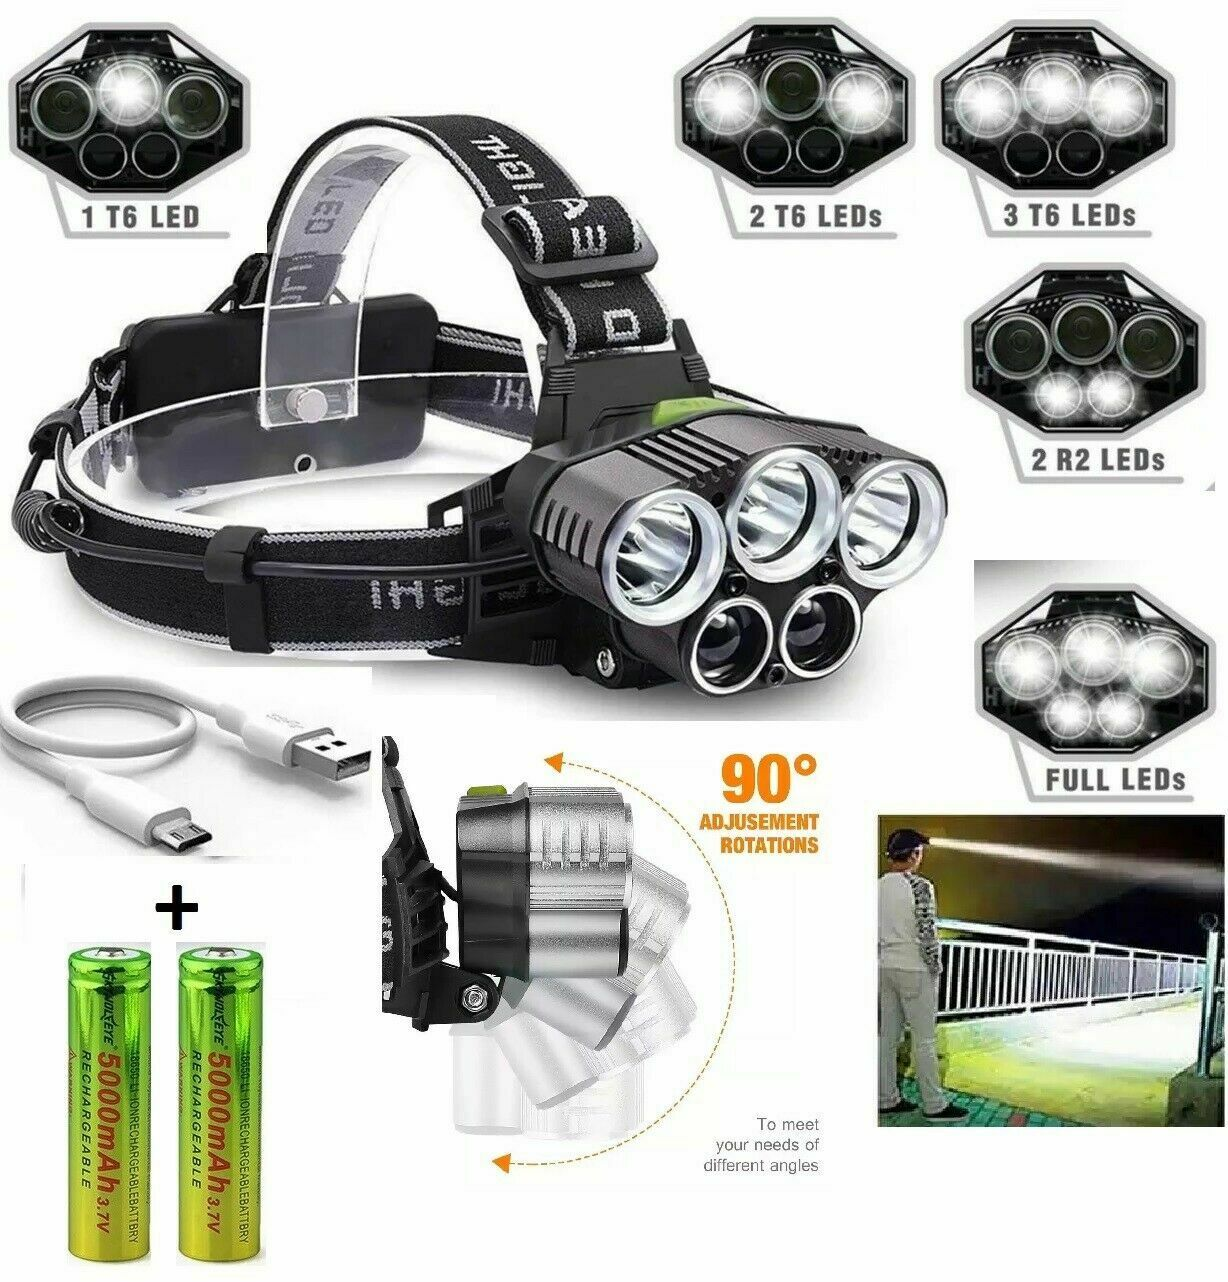 The MagicTek™ Headlamp and all modes of light